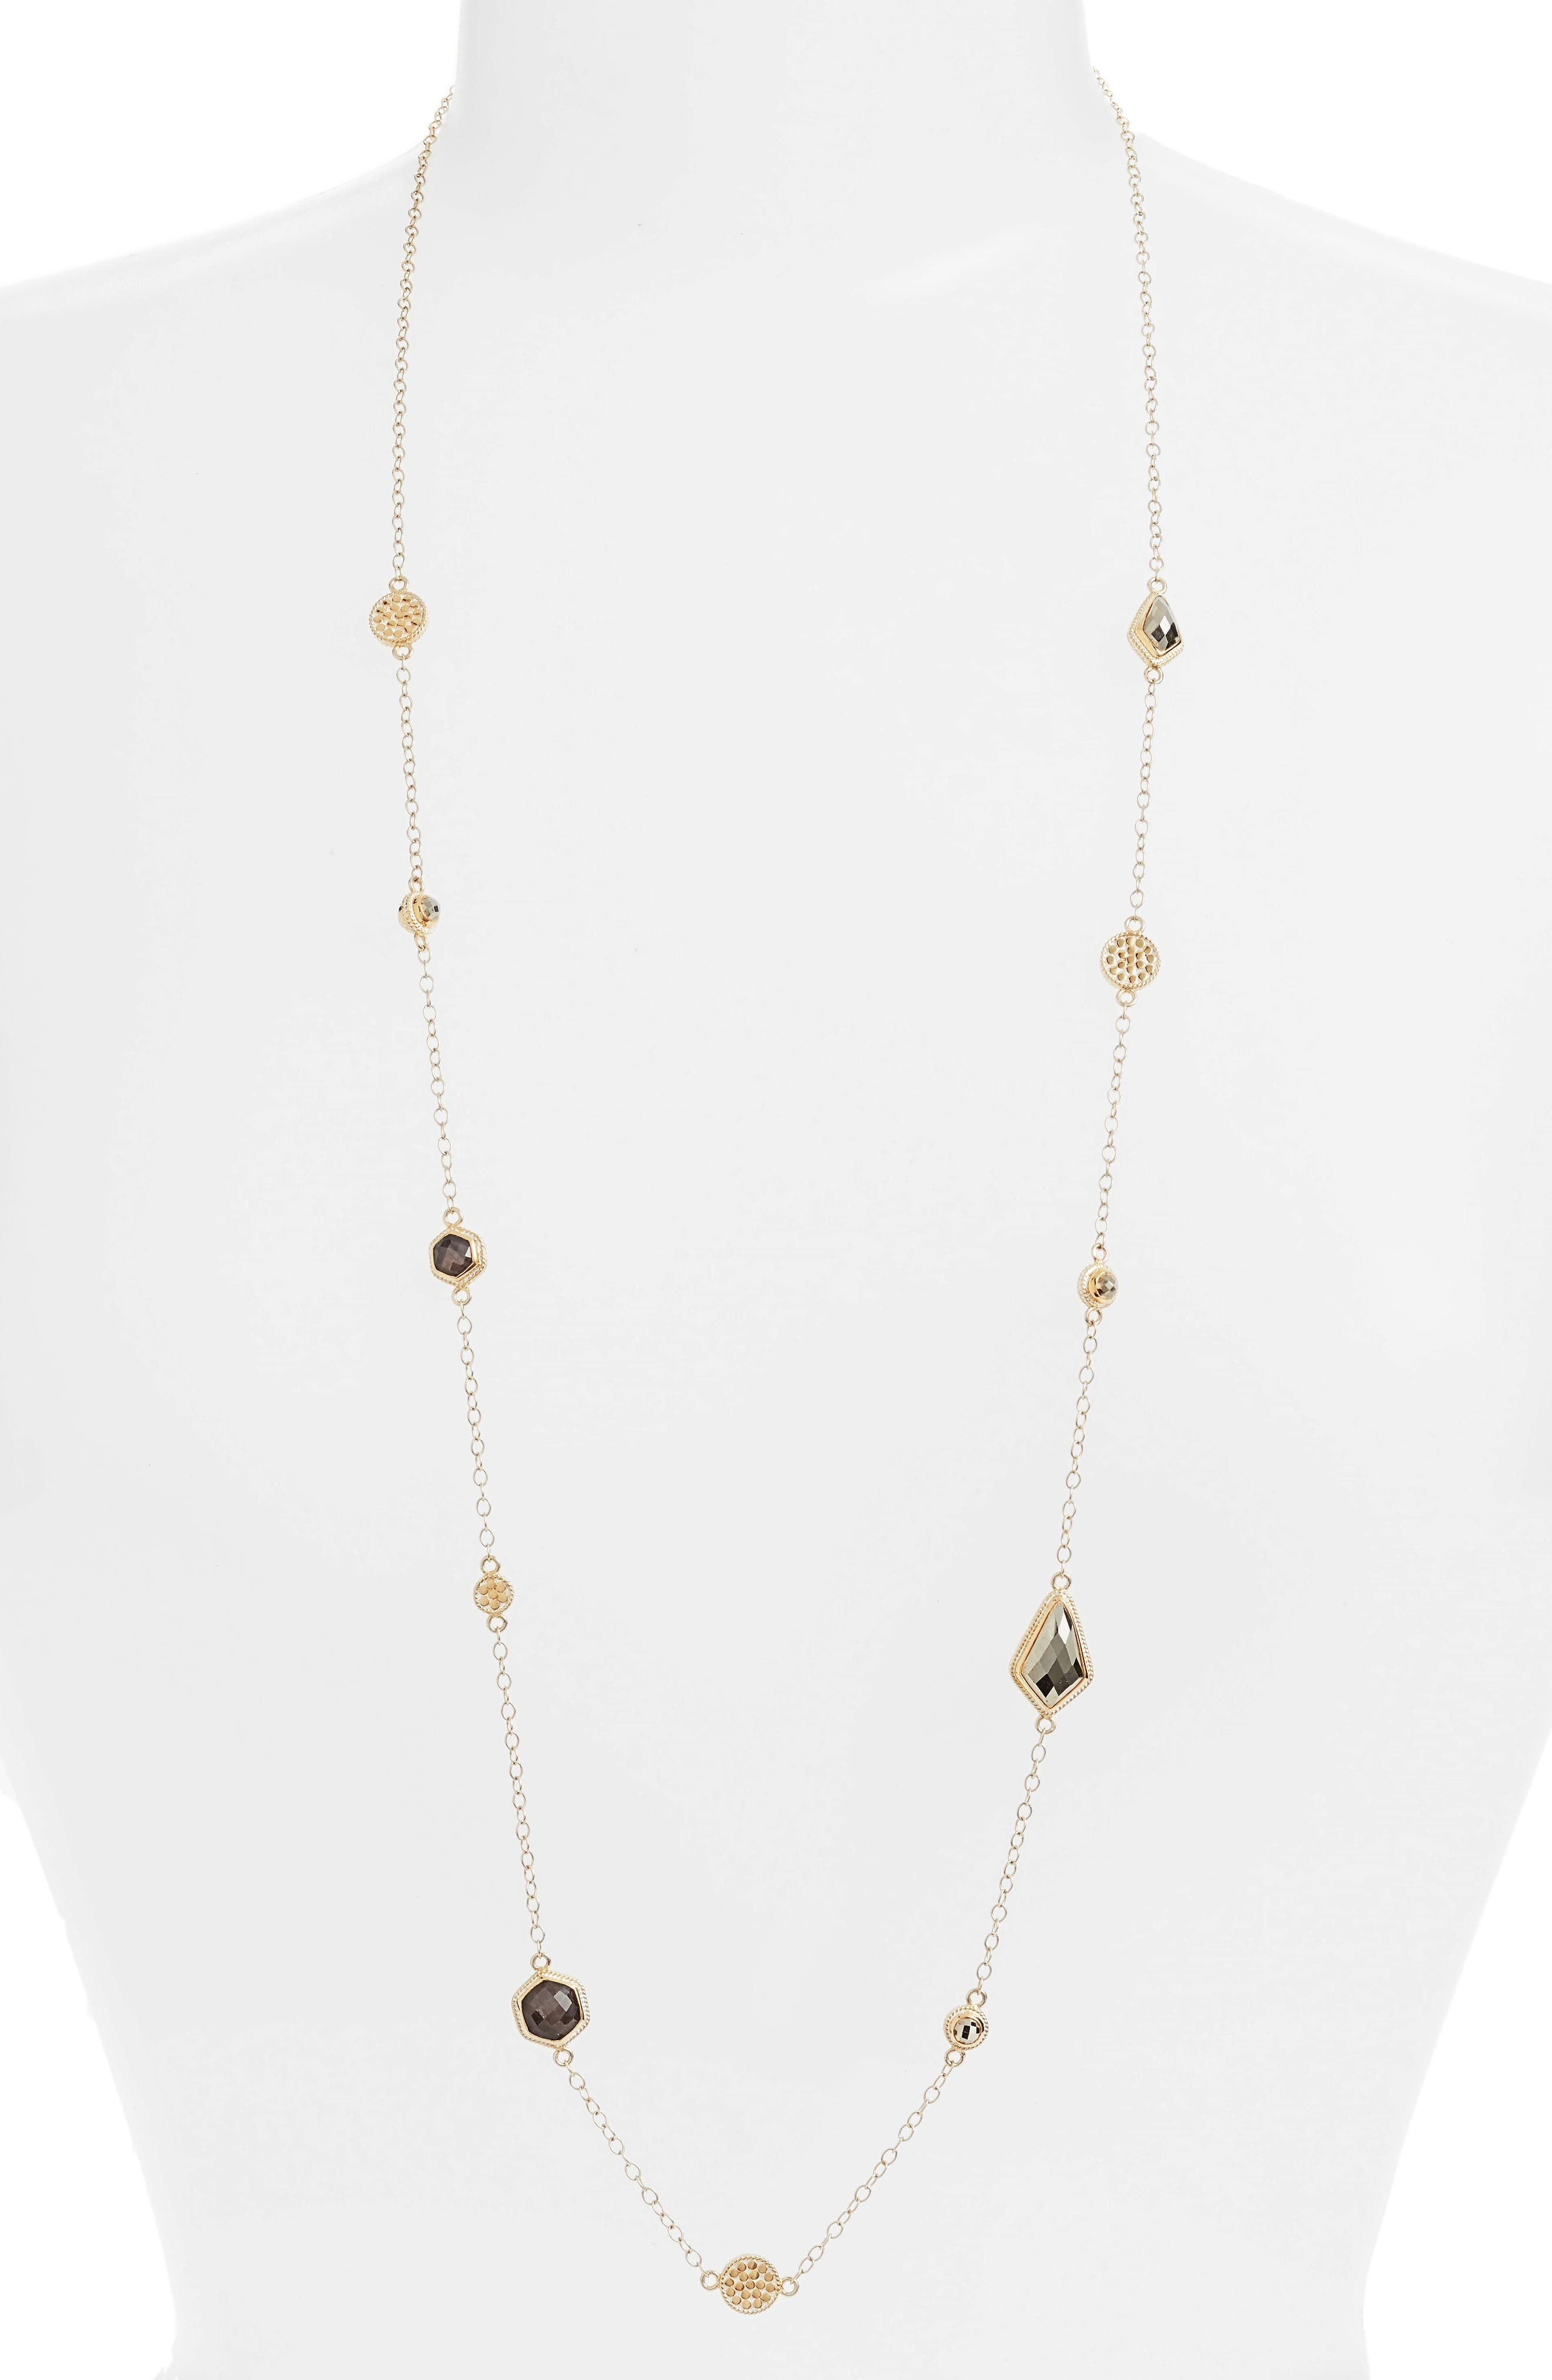 Grey Sapphire & Pyrite Long Station Necklace,                             Main thumbnail 1, color,                             Gold/ Silver/ Grey/ Pyrite